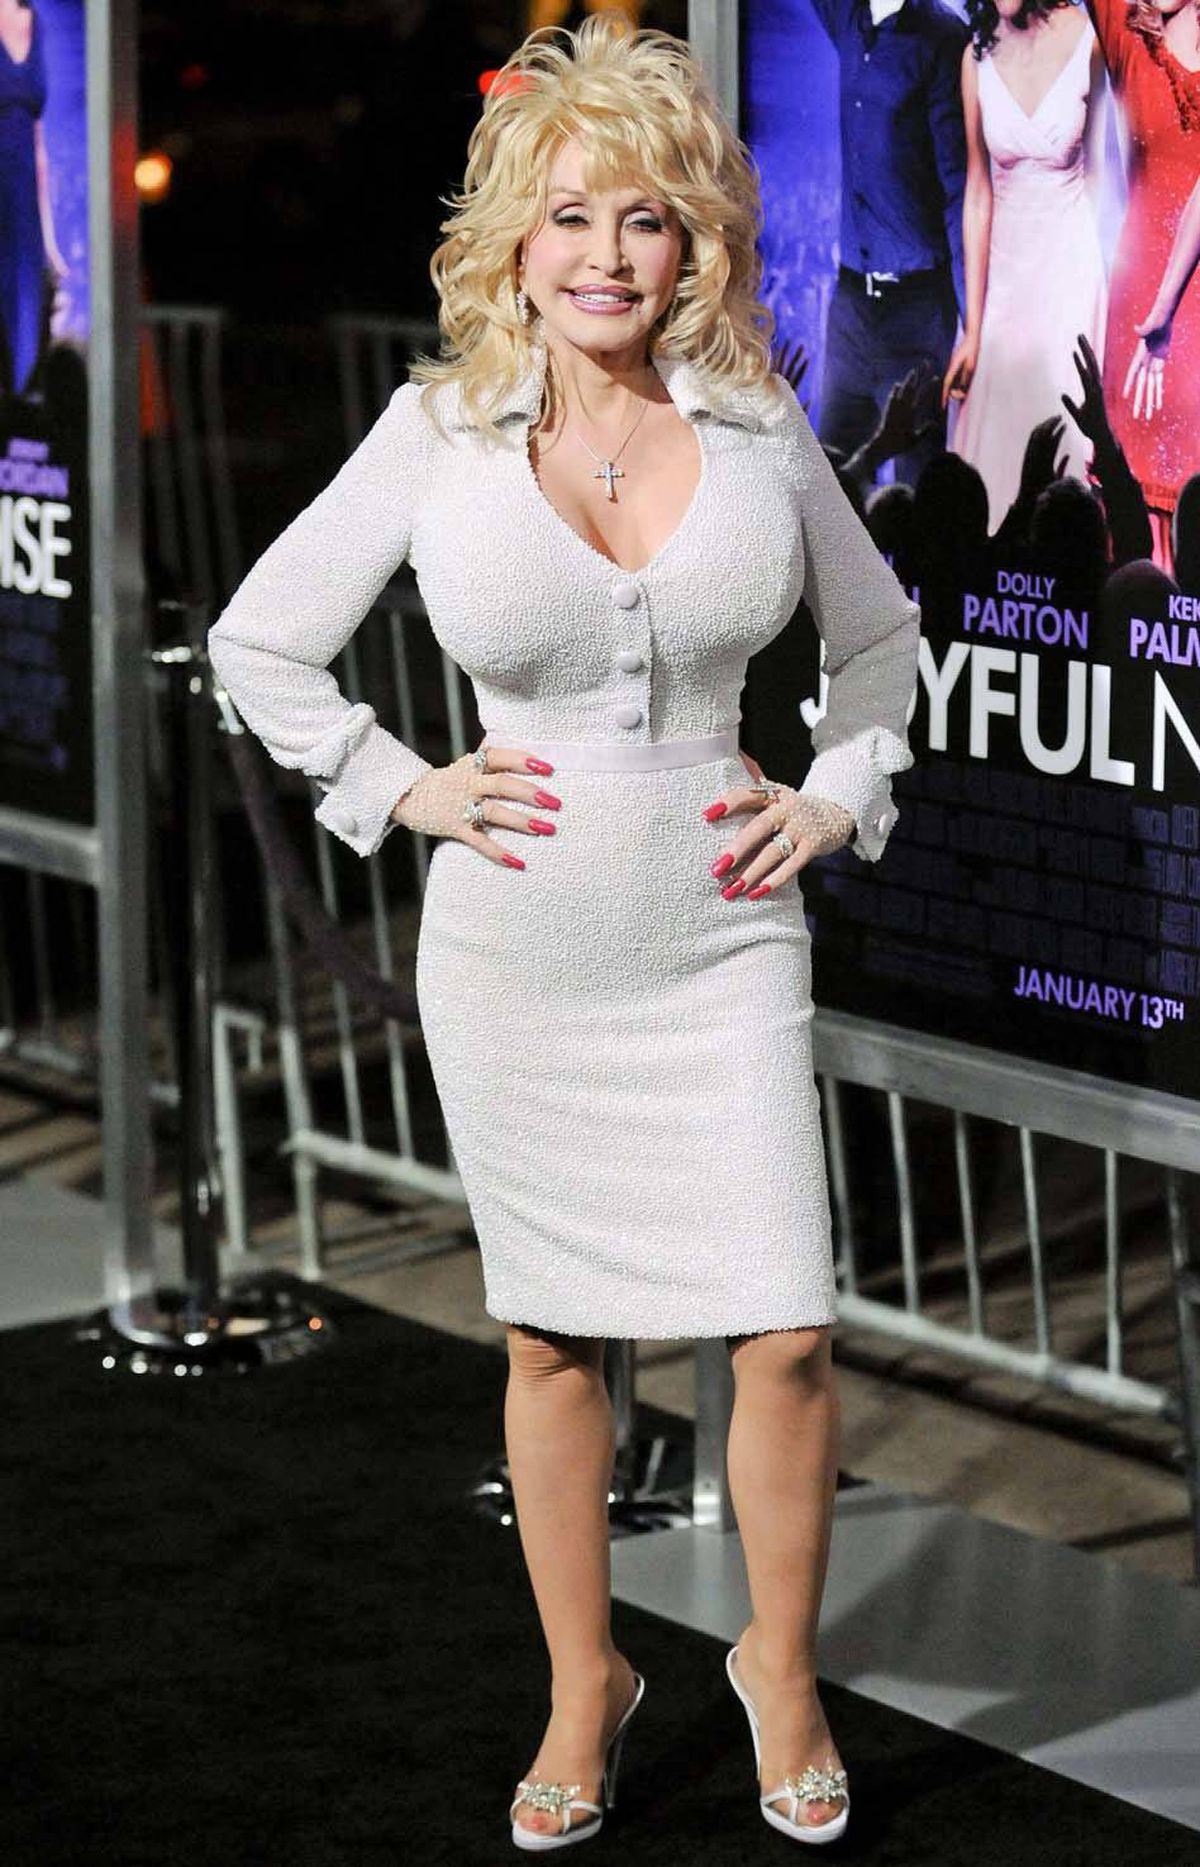 """Dolly Parton arrives at the Hollywood premiere of """"Joyful Noise"""" in Los Angeles on Monday wearing a dress that features a set of oversize buttons."""